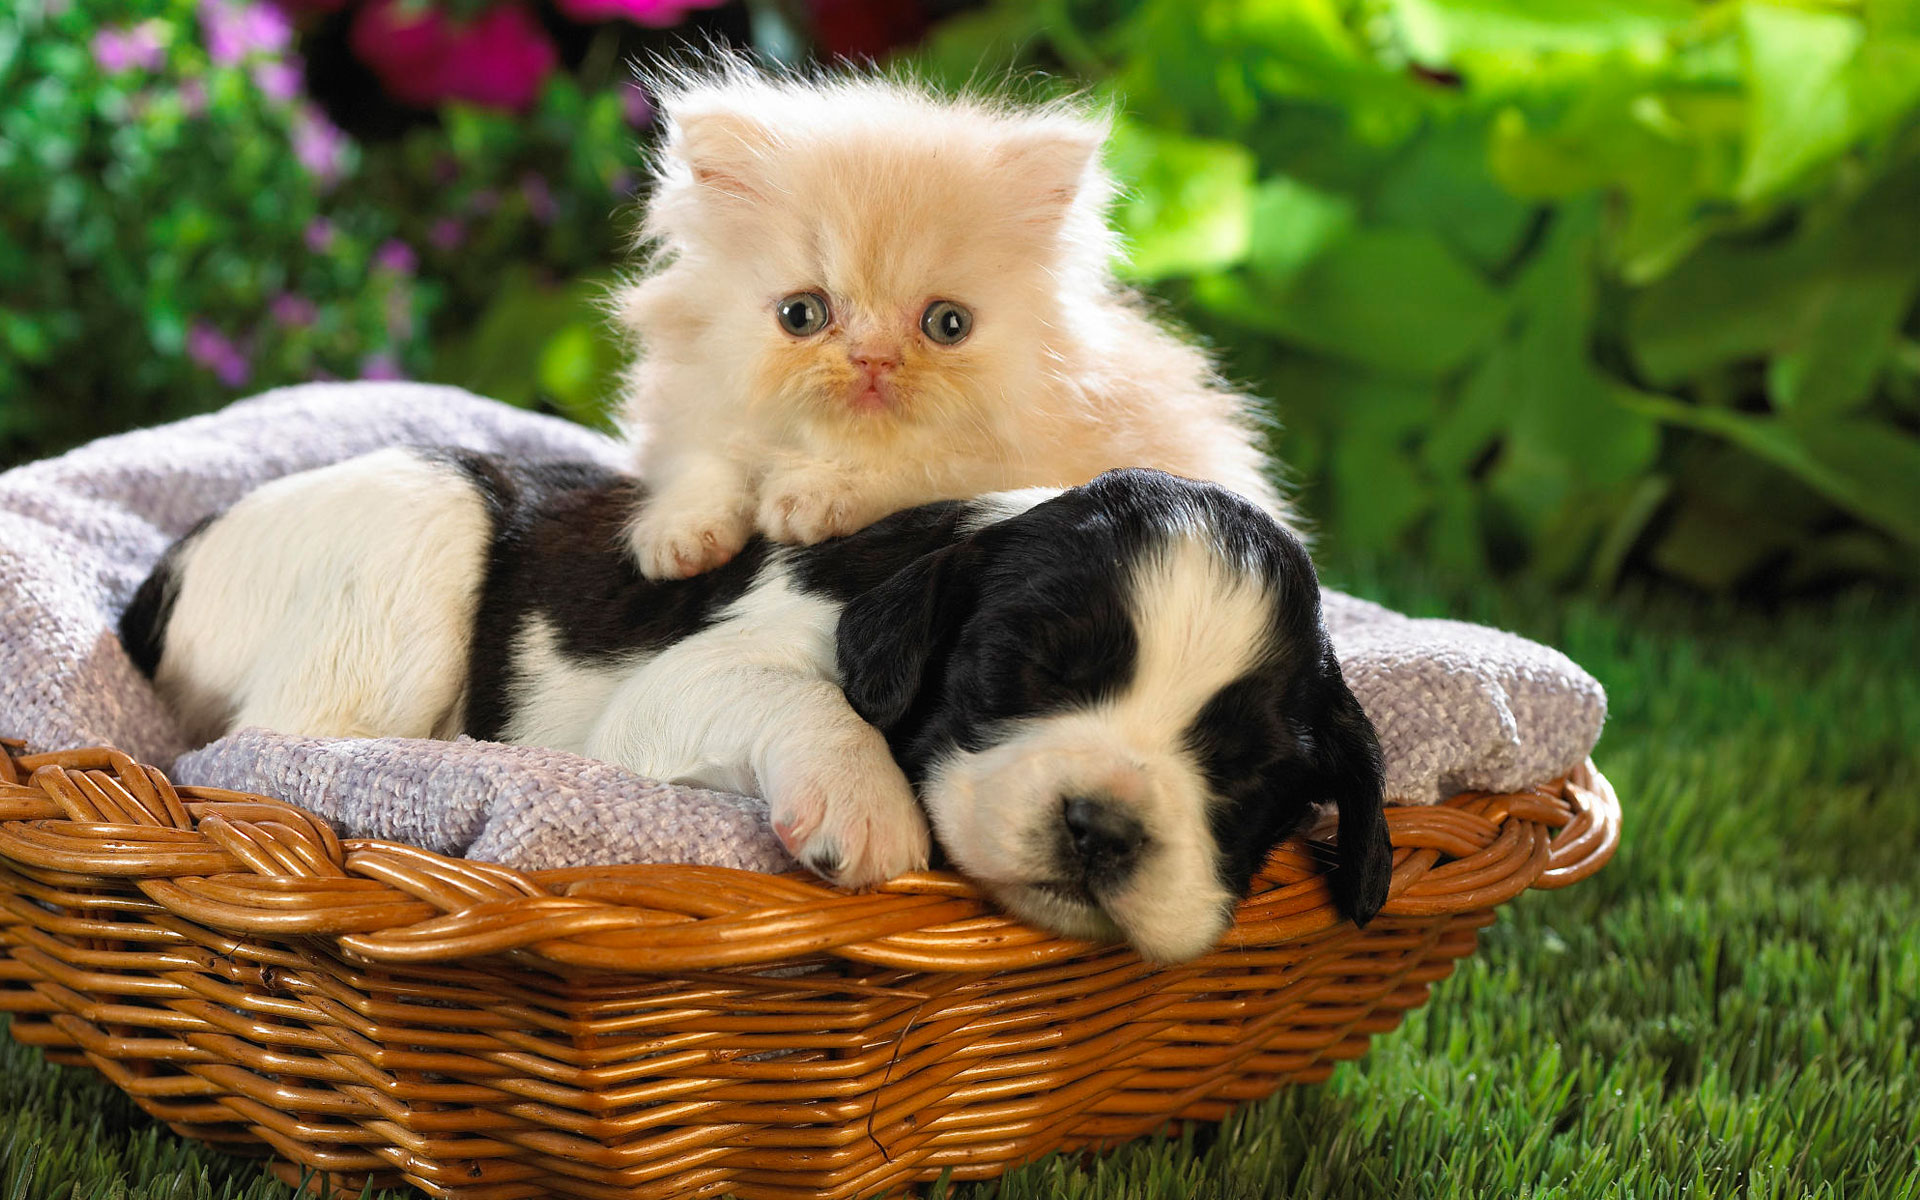 wallpapers about nice buddies basket cute 1920x1200